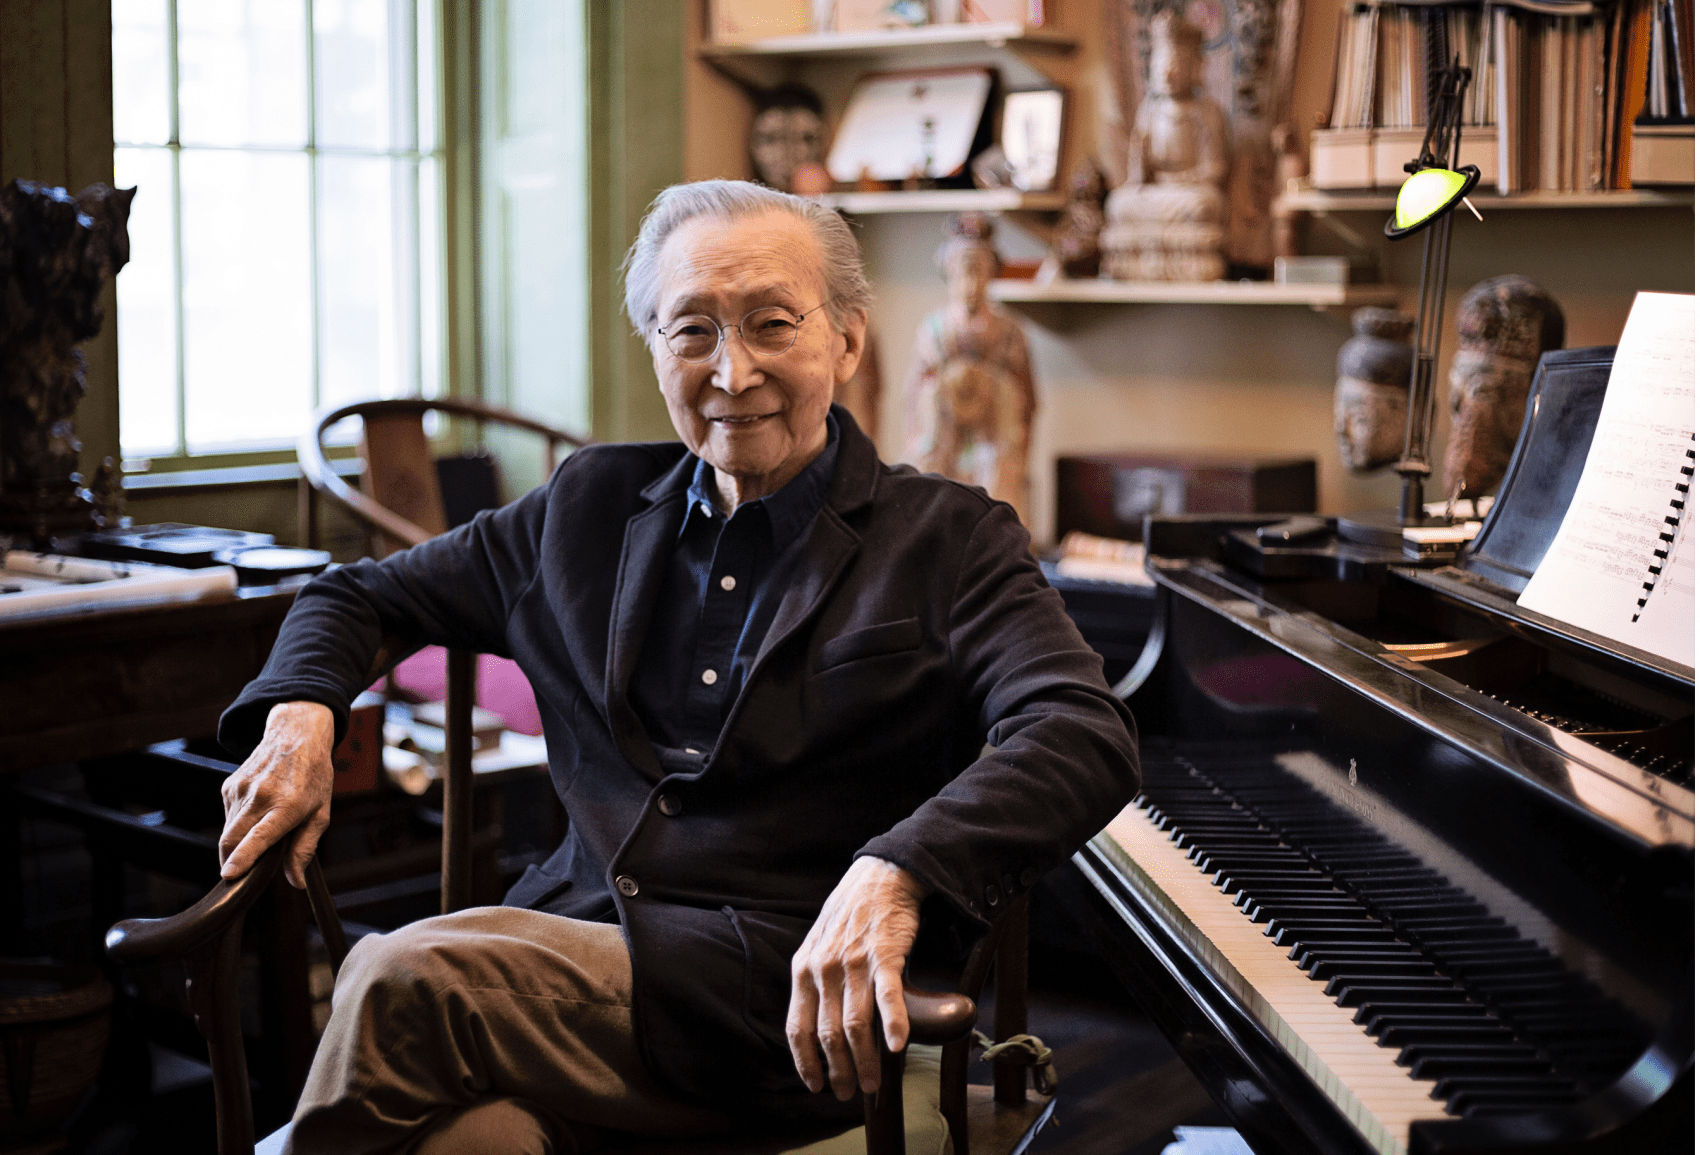 Chou Wen-chung at home in New York, 2018